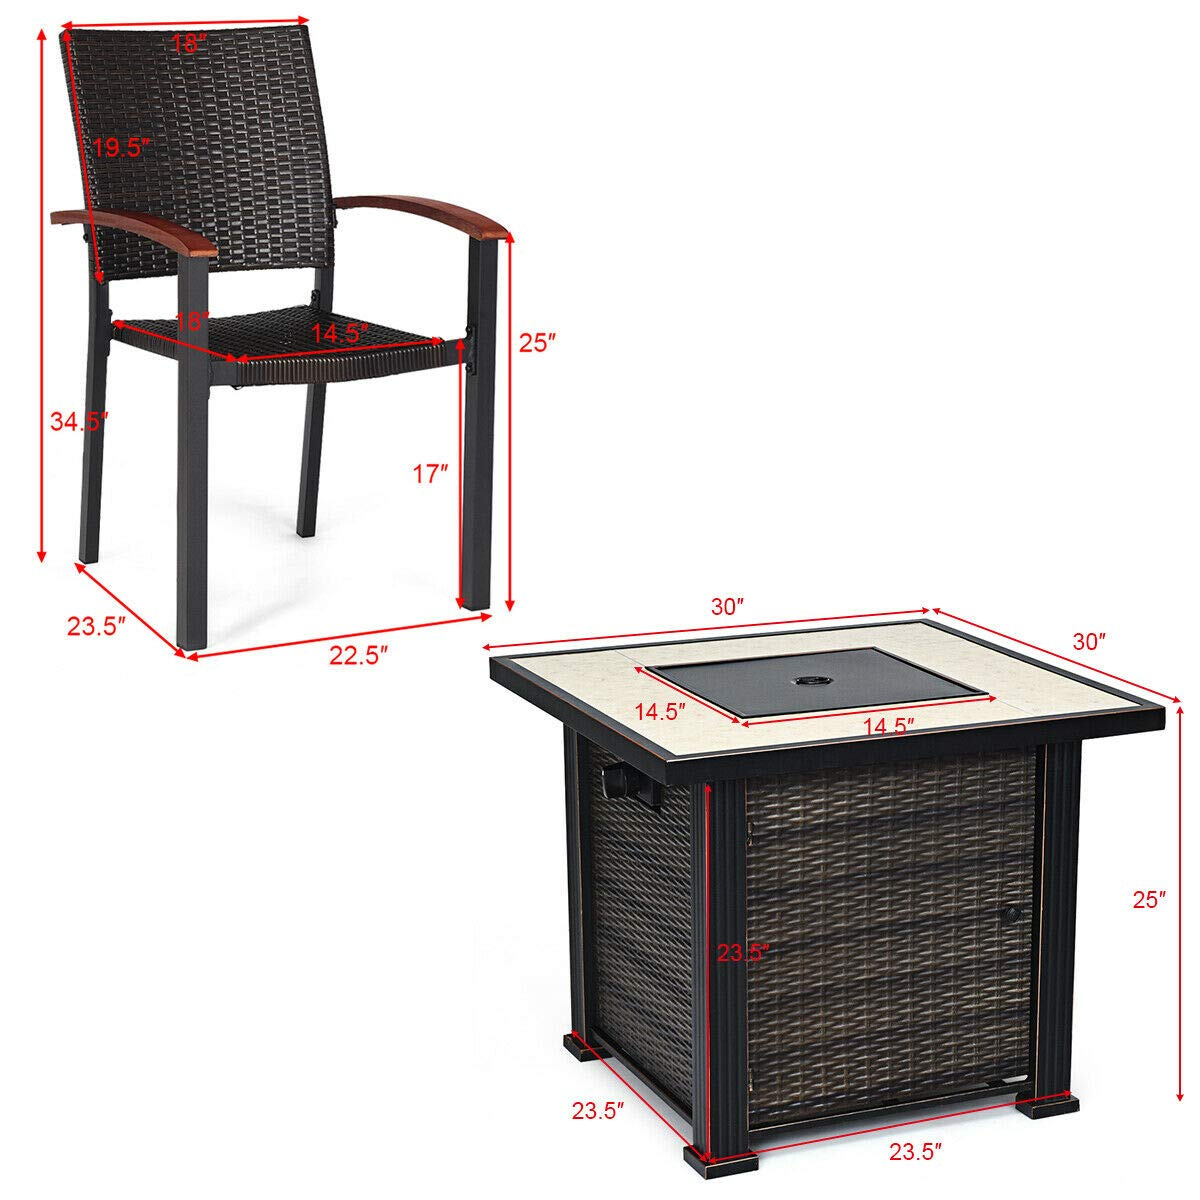 Tangkula 50,000 BTUs Square Propane Gas Fire Pit Table Set 5 PCS Heater Outdoor Table with 4 Rattan Chairs